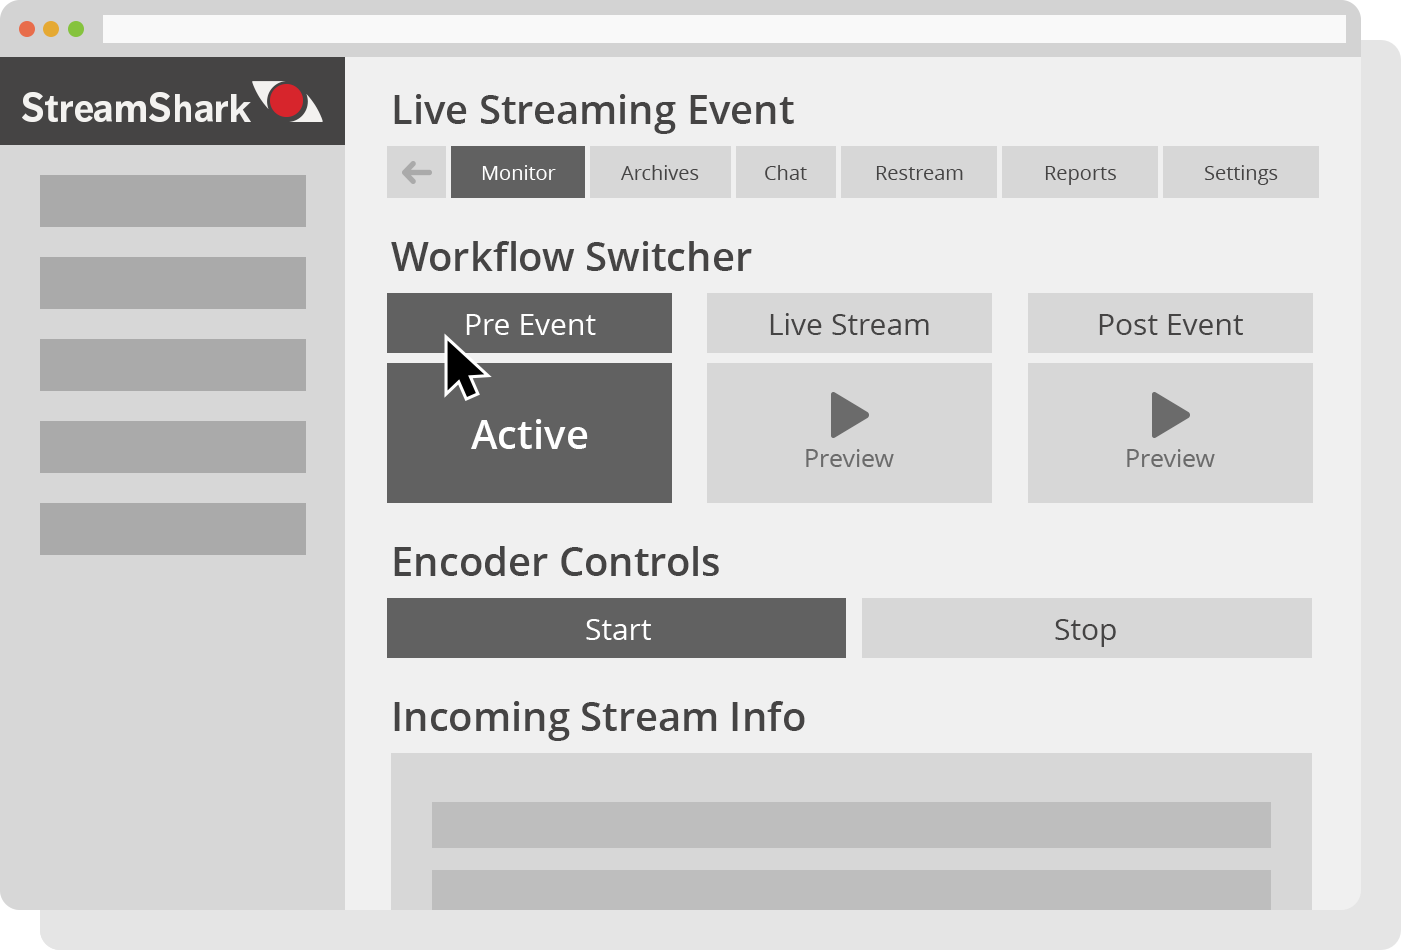 Live Streaming Workflow With Encoder Controls